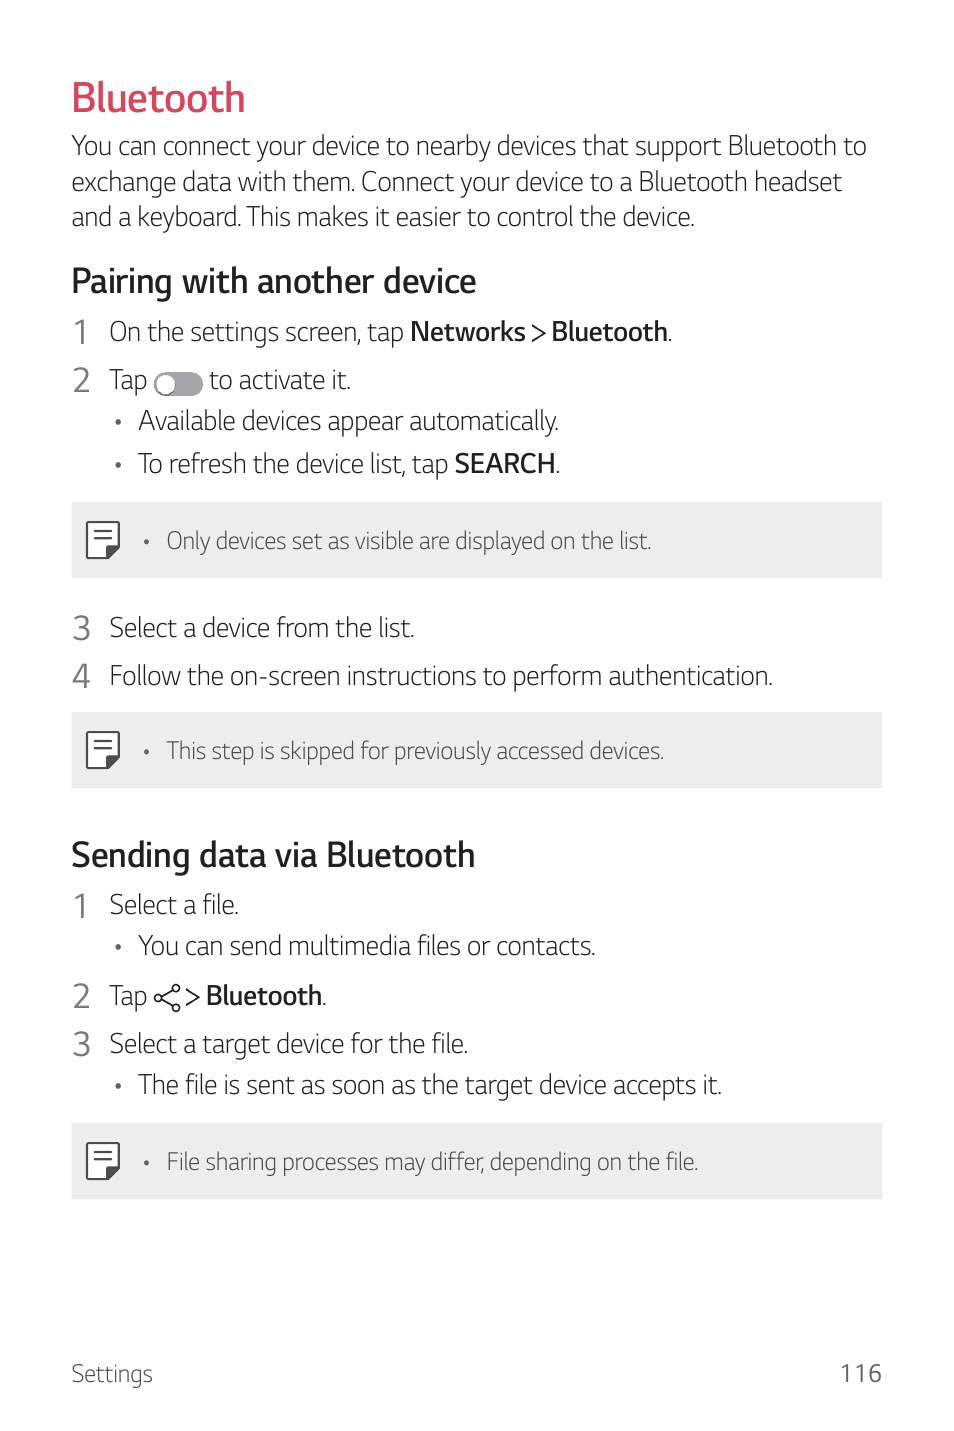 Bluetooth, Pairing with another device, Sending data via